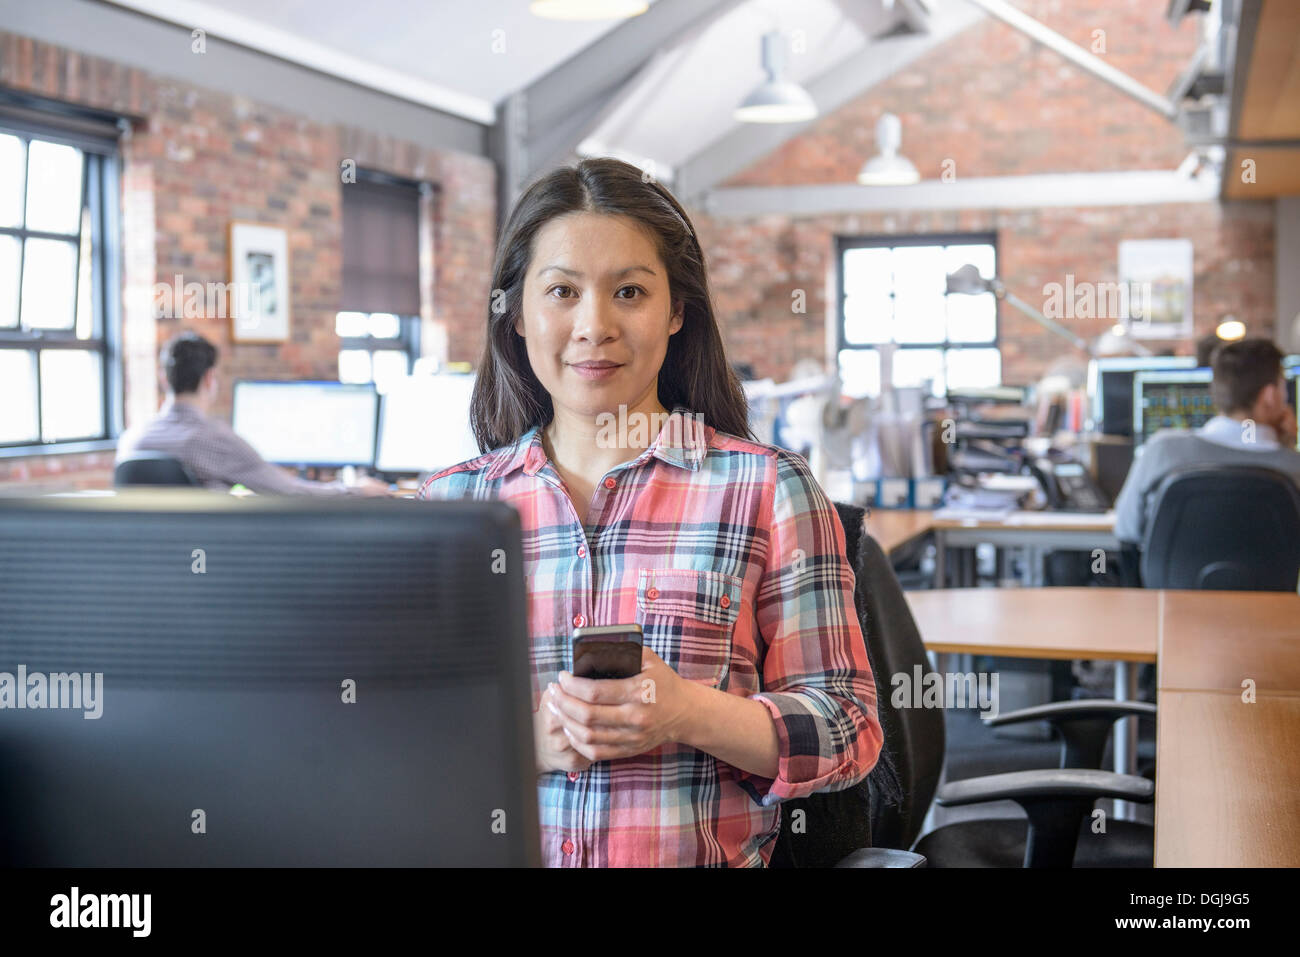 Office worker holding mobile phone at desk in office Photo Stock